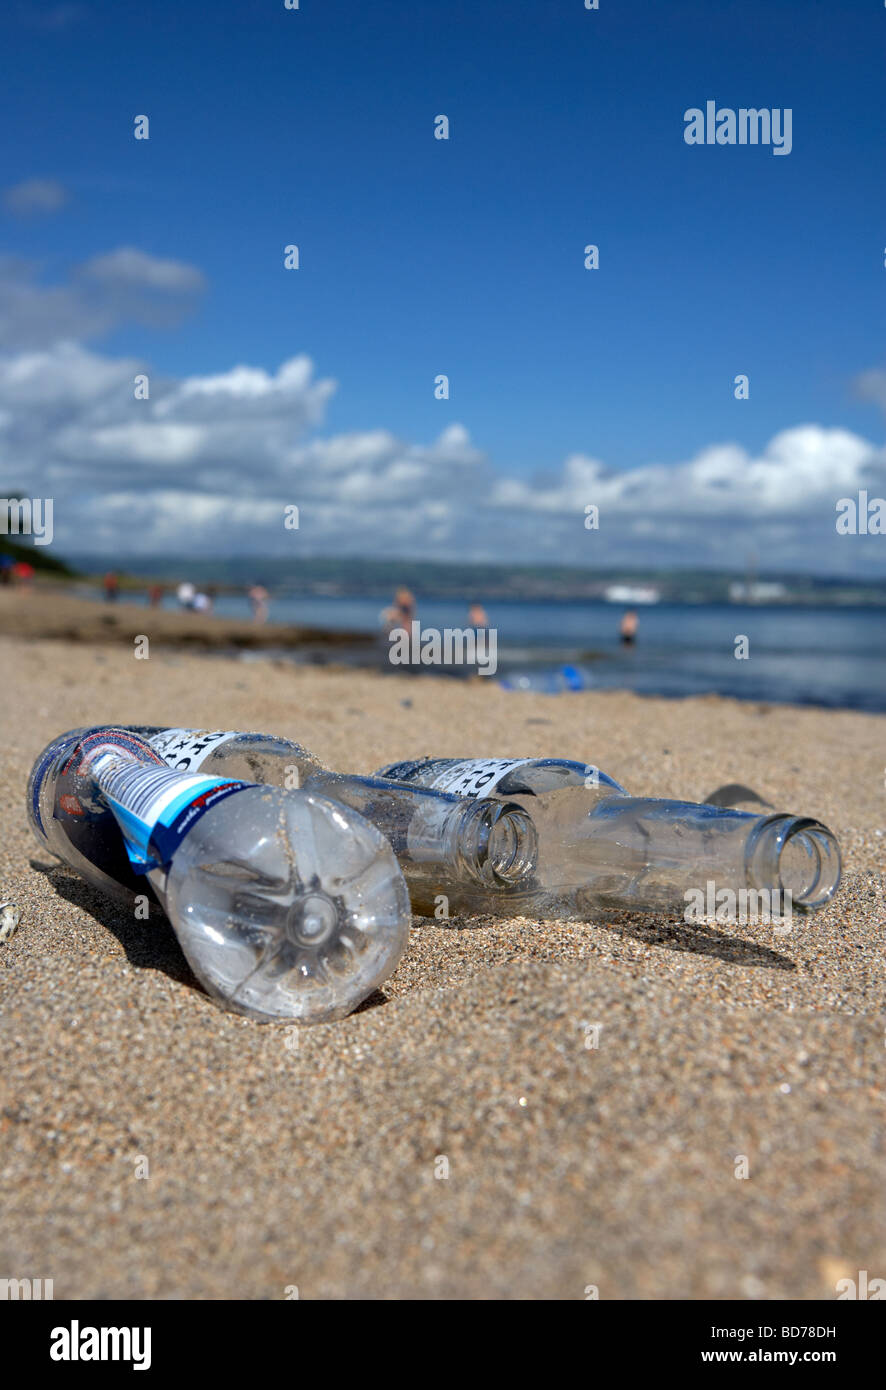 empty beer bottles and plastic bottle discarded littering a beach in county down northern ireland uk - Stock Image